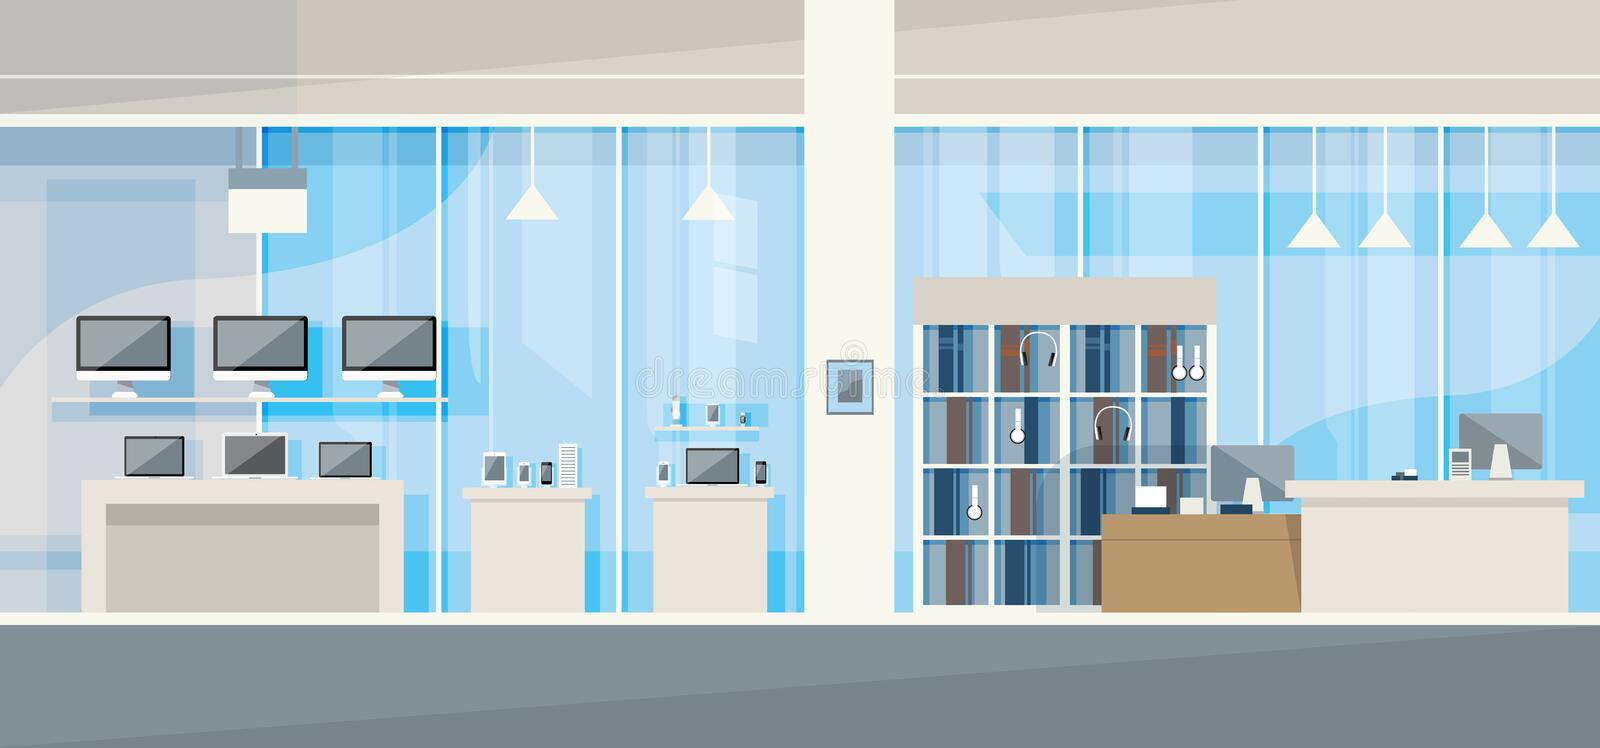 Modern Electronics Store Shop Interior Stock Vector - Image: 67647537